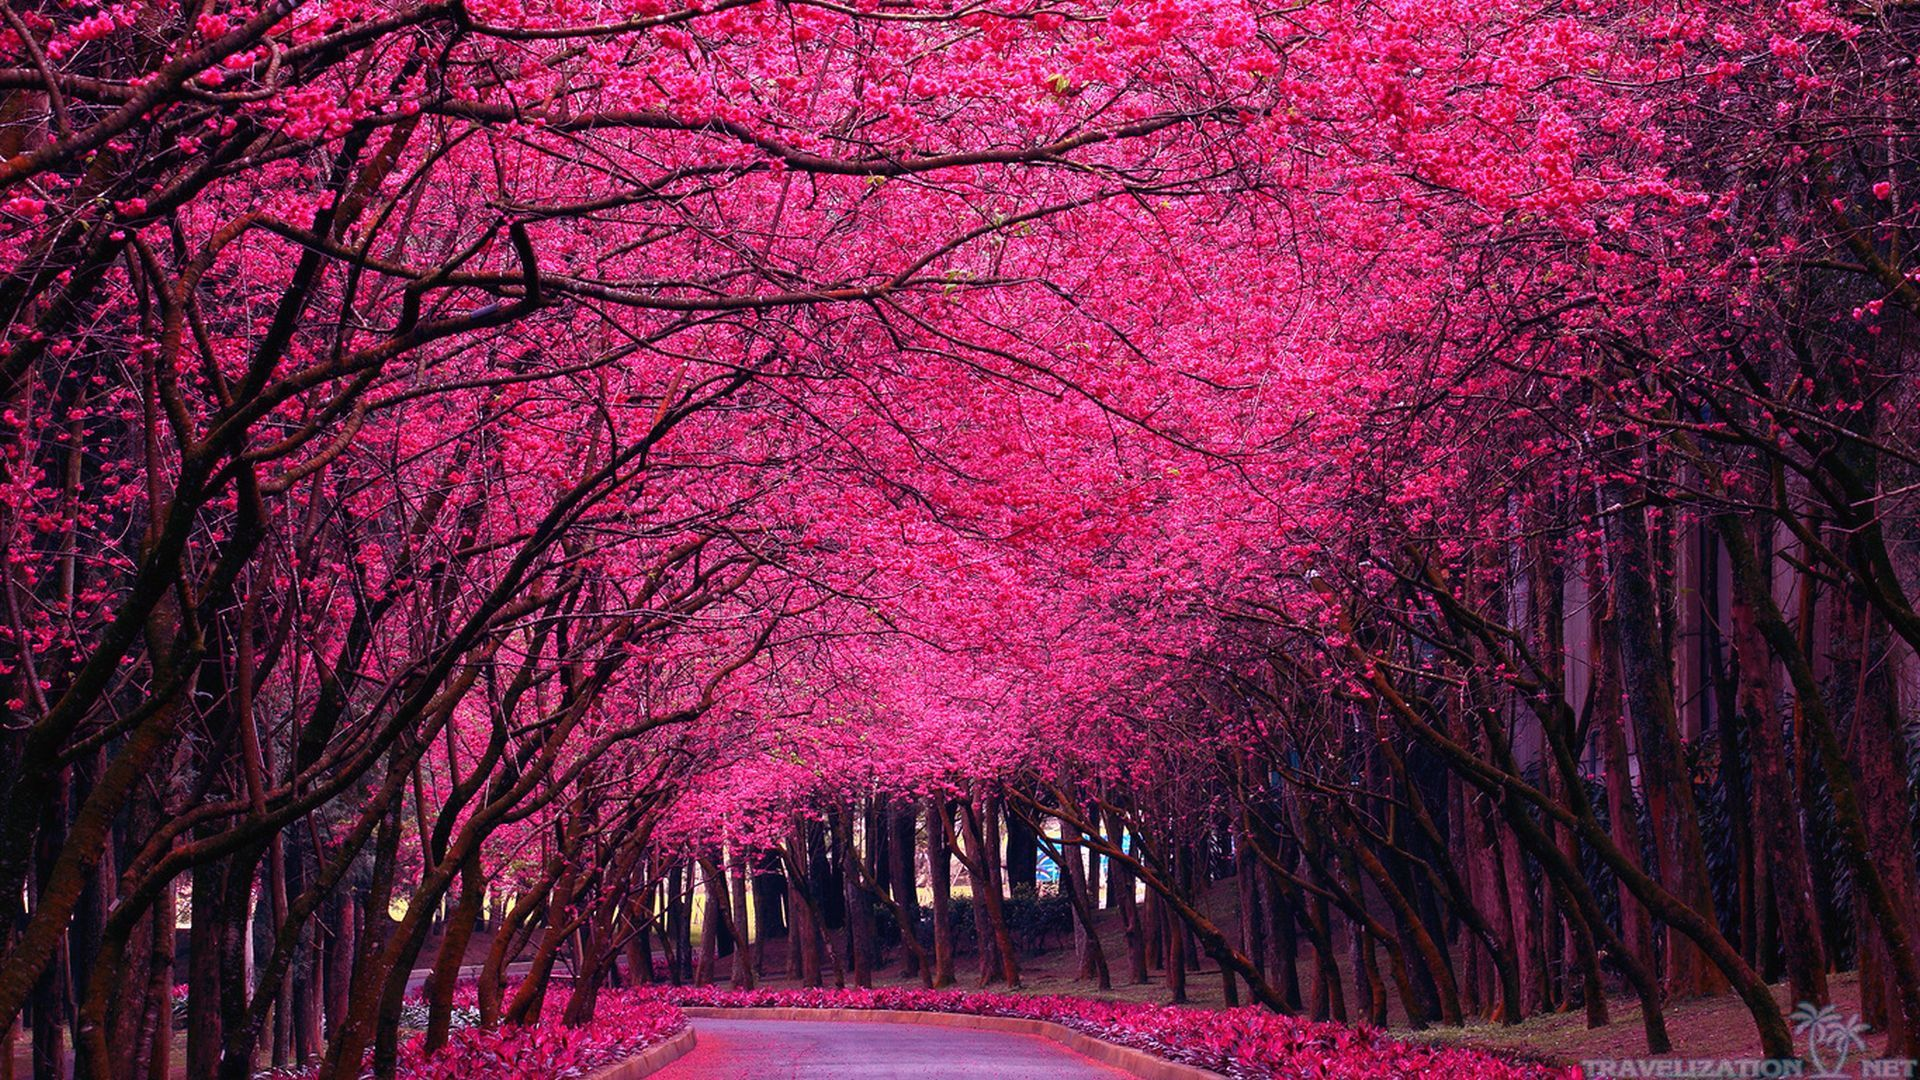 Pink Spring Trees Hd Images 3 Hd Wallpapers Hdimges Com Beautiful Photography Nature Flower Background Images Pink Trees